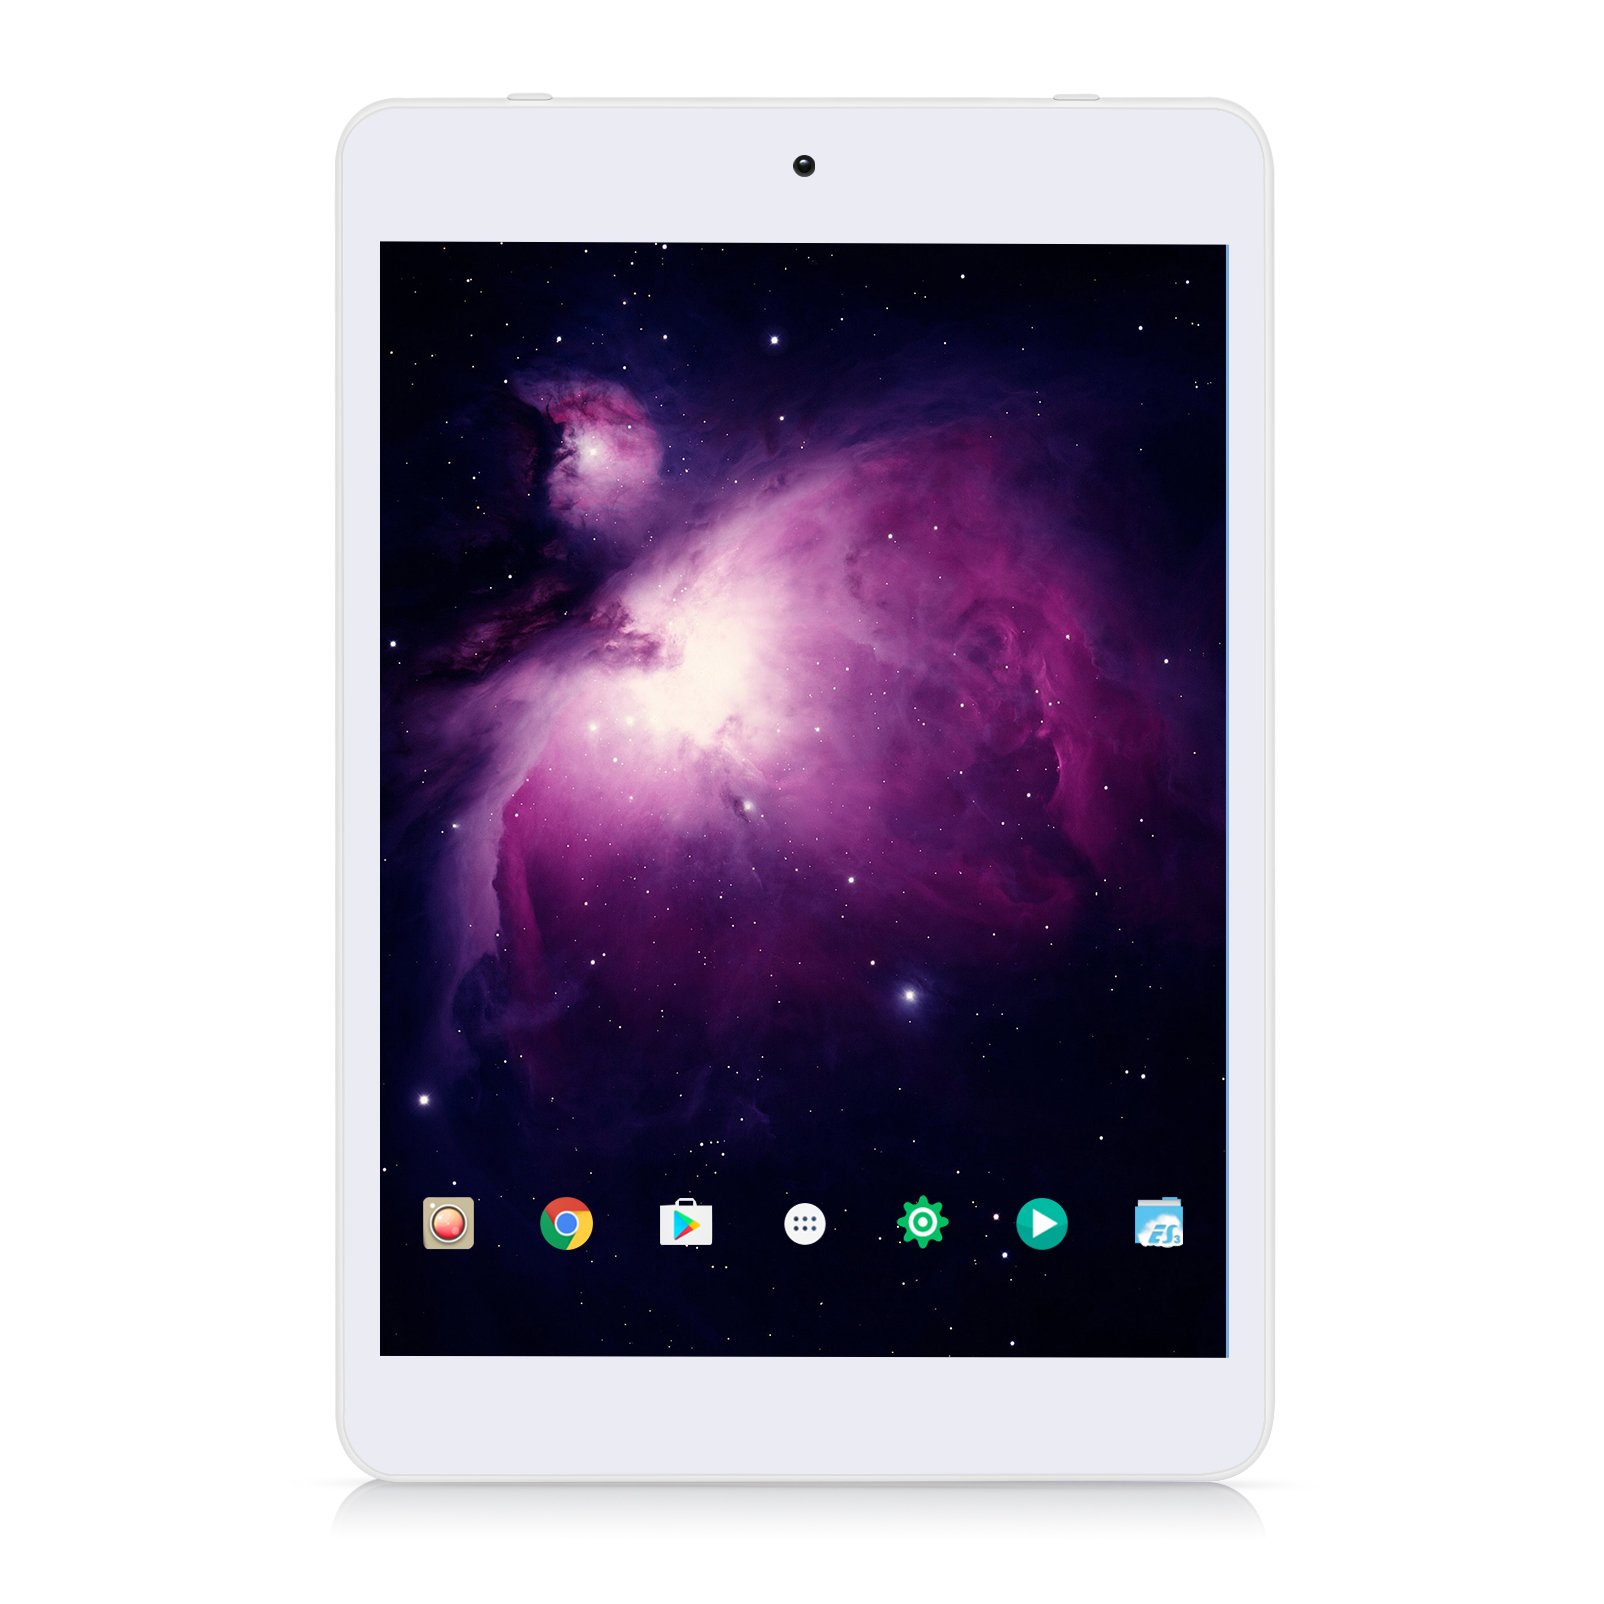 """7.85"""" Tablet Android Google 7.0, 1GB/16GB, 1.3gHz Quad Core,768x1024 IPS HD Display,Dual Camera, Microsoft Mini HDMI Bluetooth G-Sensor Supported,GMS Certified,iRULU eXpro 5 S Tablet (X5 S)-White by iRULU (Image #1)"""